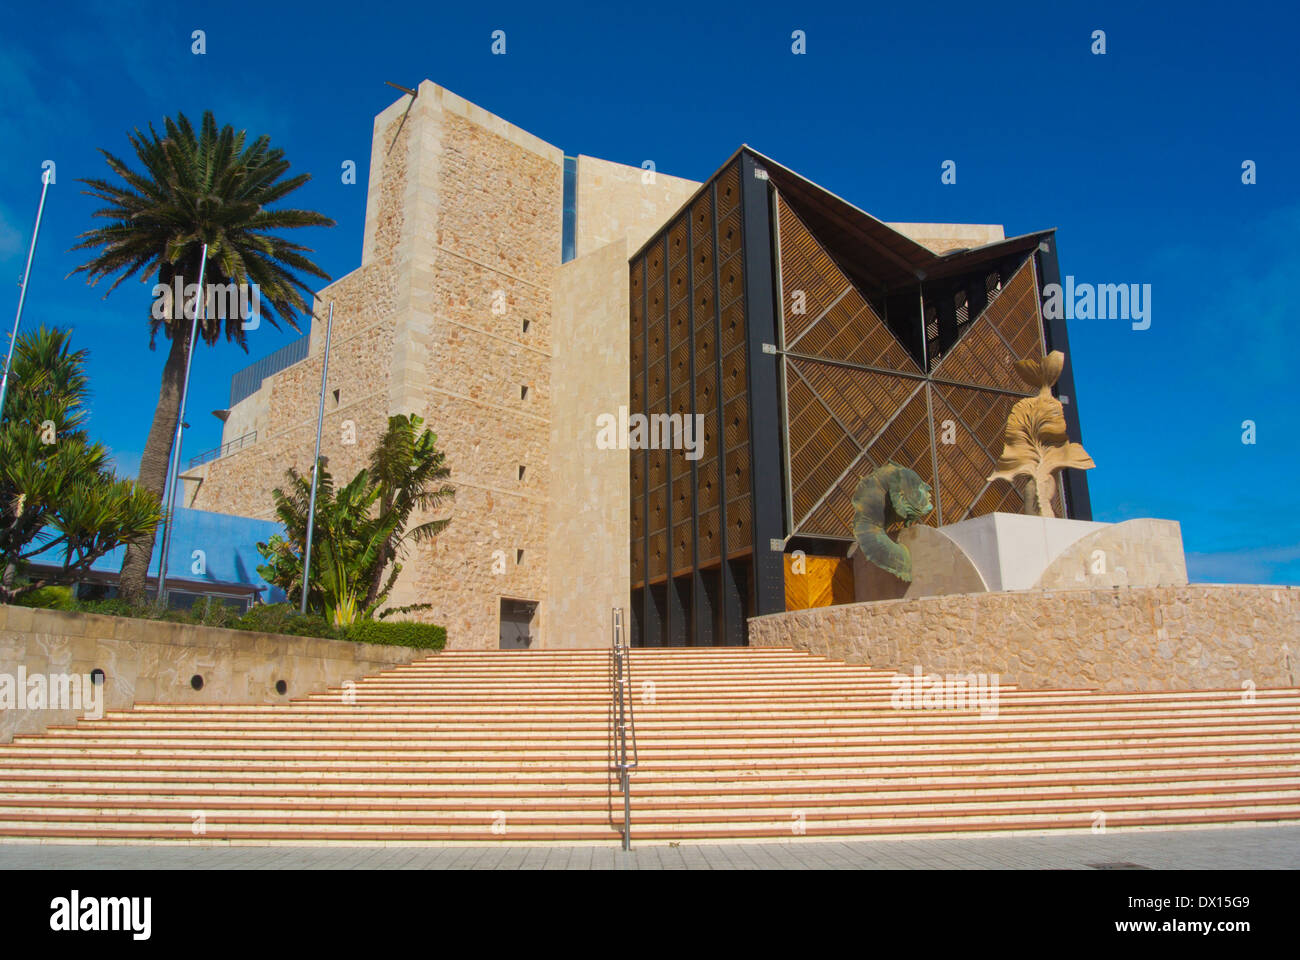 Auditorio alfredo kraus concert hall las palmas de gran canaria stock photo royalty free image - Alfredo kraus auditorio ...